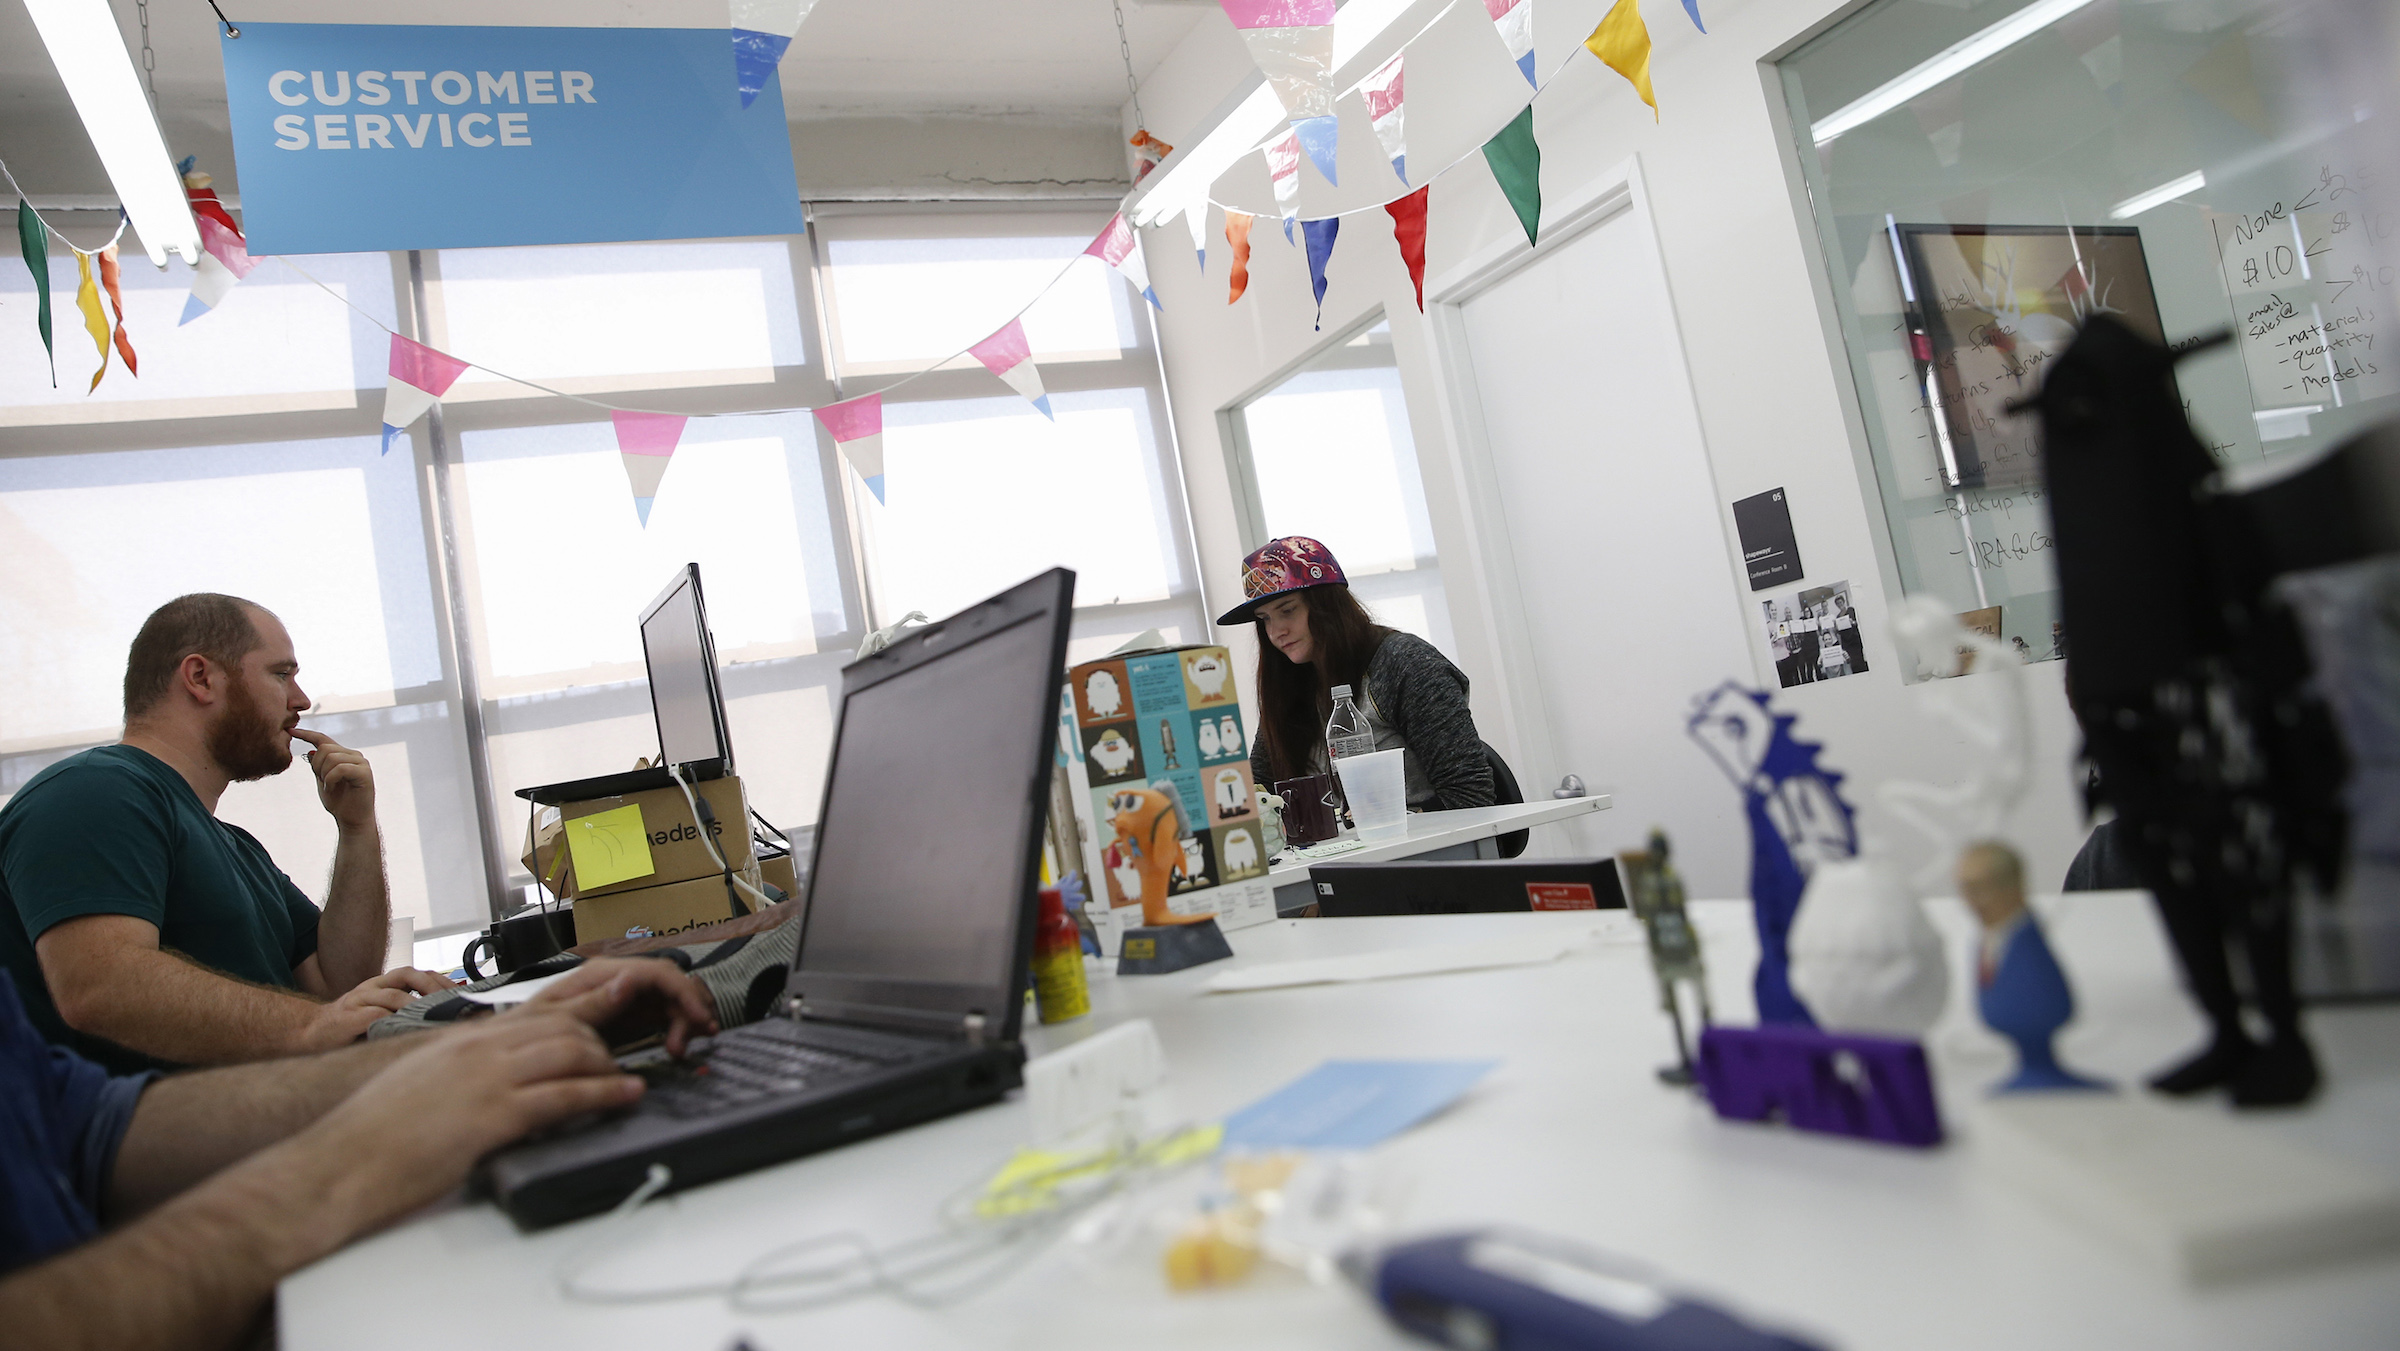 People work at the customer service area inside the Shapeways 3D printing office in the borough of Queens in New York, September 17, 2014. Shapeways is  a young Dutch 3D printing firm that has two factories, one in Eindhoven in the Netherlands and one in New York, that let anyone - from haute-couture designers to cat-lovers - print what they want. CEO Peter Weijmarshausen moved the firm's headquarters to New York in 2010 to be close to tis main market and attract talent and investment.  To match Insight EUROPE-STARTUPS/MAKERS  Picture taken September 17, 2014. REUTERS/Shannon Stapleton (UNITED STATES - Tags: BUSINESS SCIENCE TECHNOLOGY) - RTR46Y1I